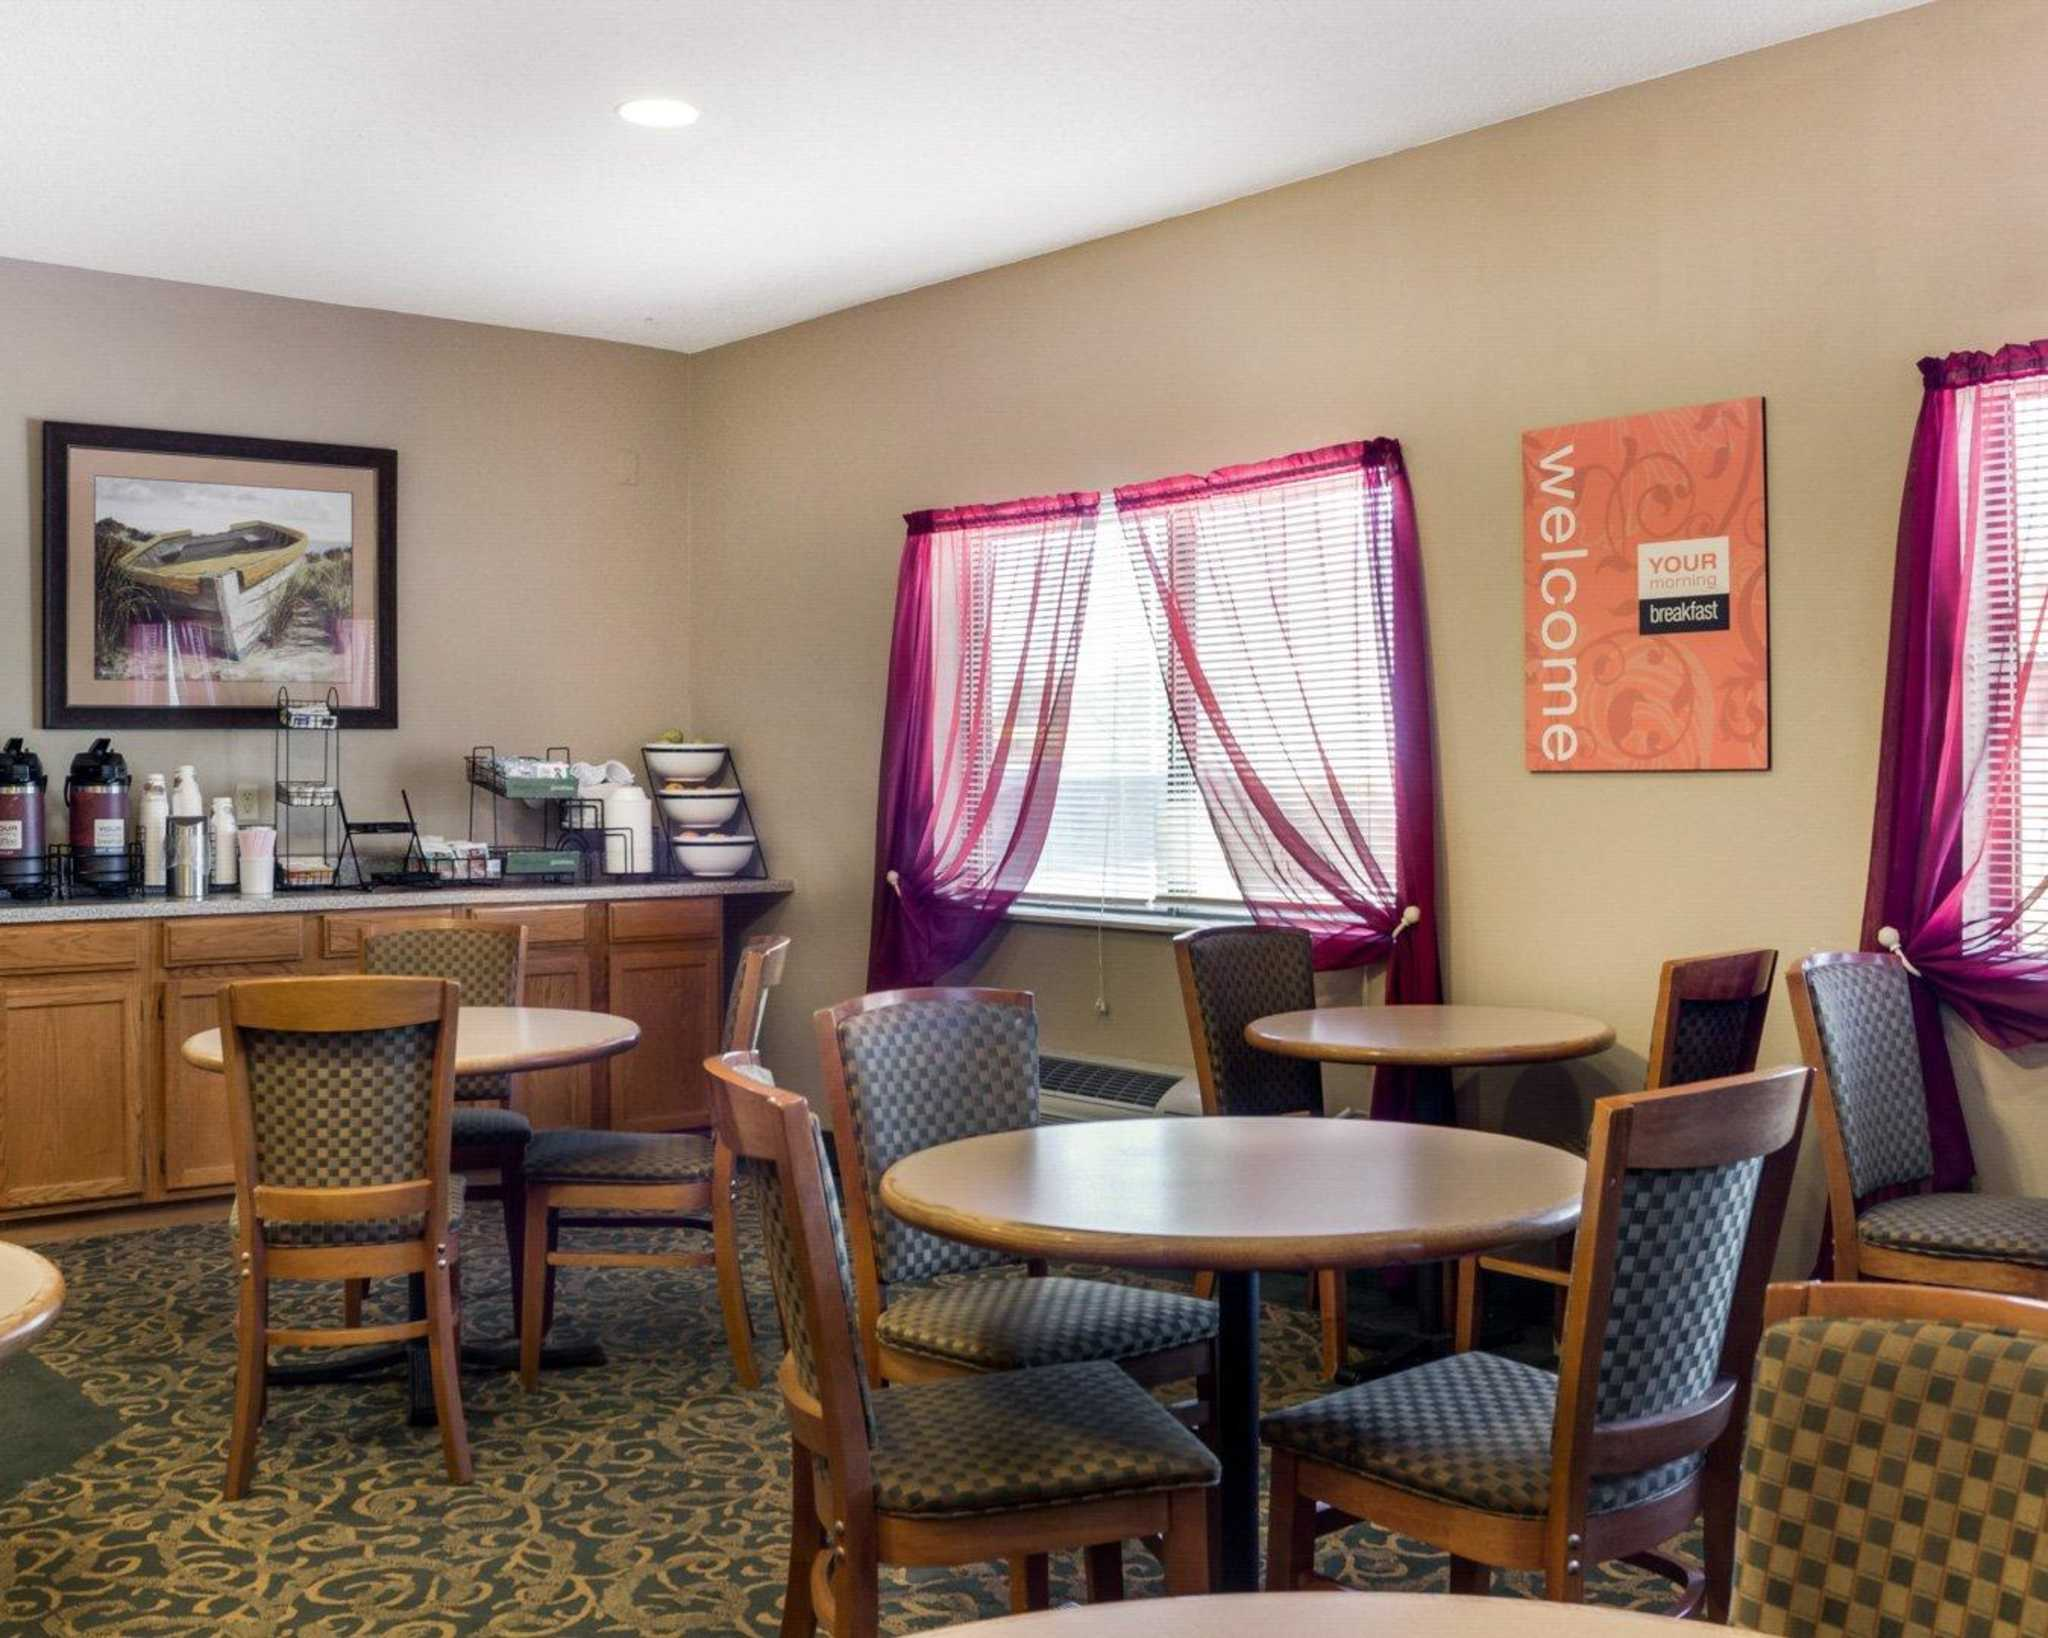 Comfort Inn Jamestown North Dakota Nd Localdatabase Com